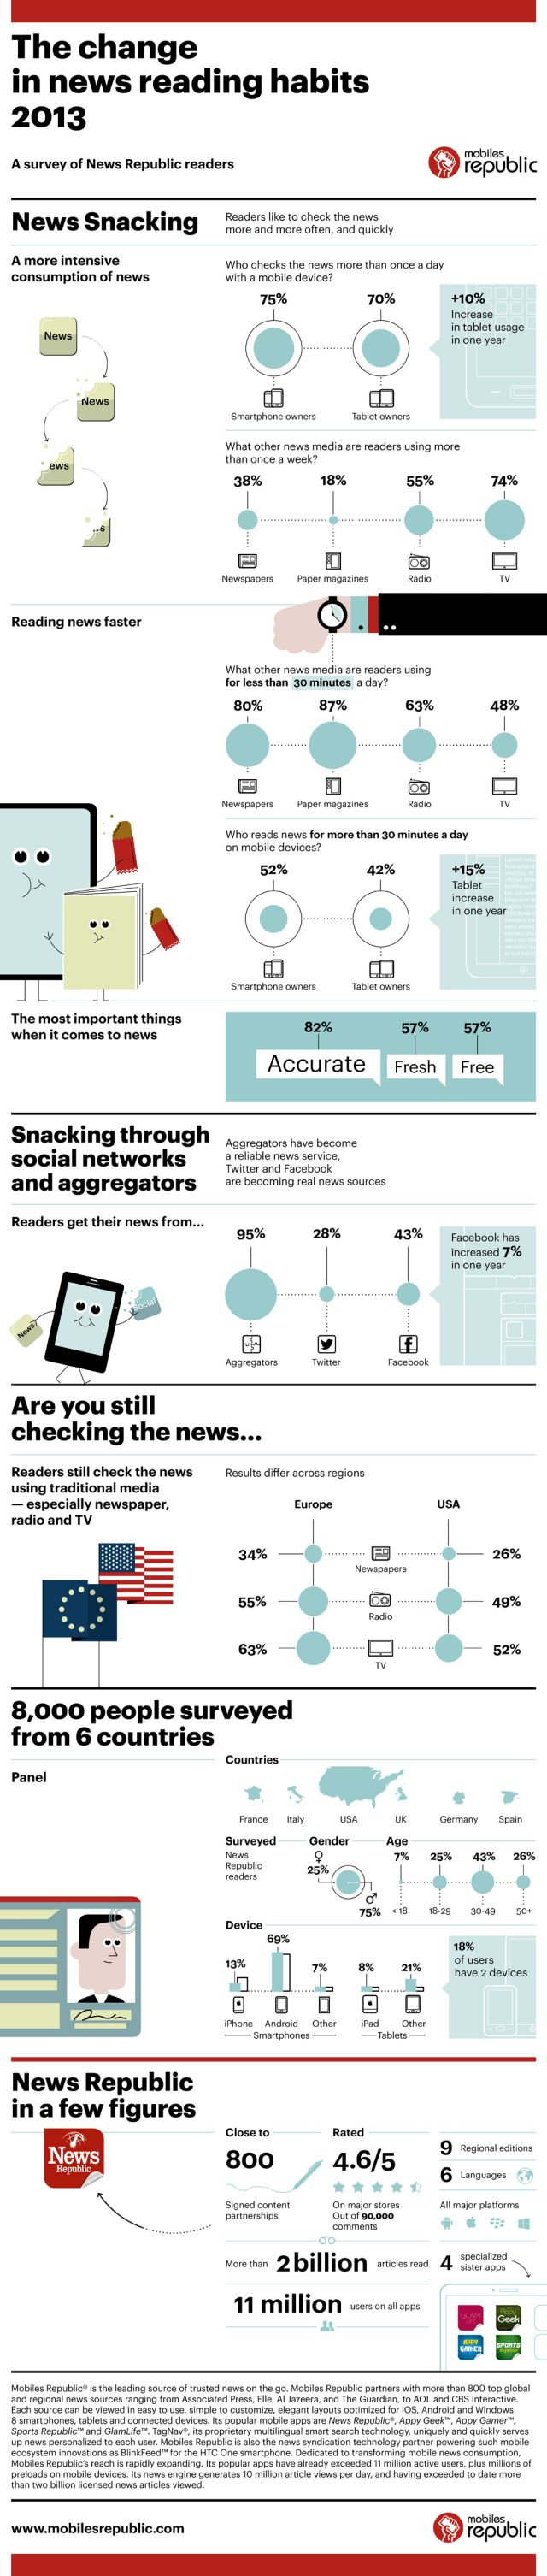 Mobiles Republic infographic identifies trends in mobile news apps, users and sources — read at http://www.newsplexer.com/2013/mobiles-republic-infographic-identifies-trends-in-mobile-news-apps-users-and-sources/ More at http://www.newsplexer.com/2013/mobiles-republic-infographic-identifies-trends-in-mobile-news-apps-users-and-sources/